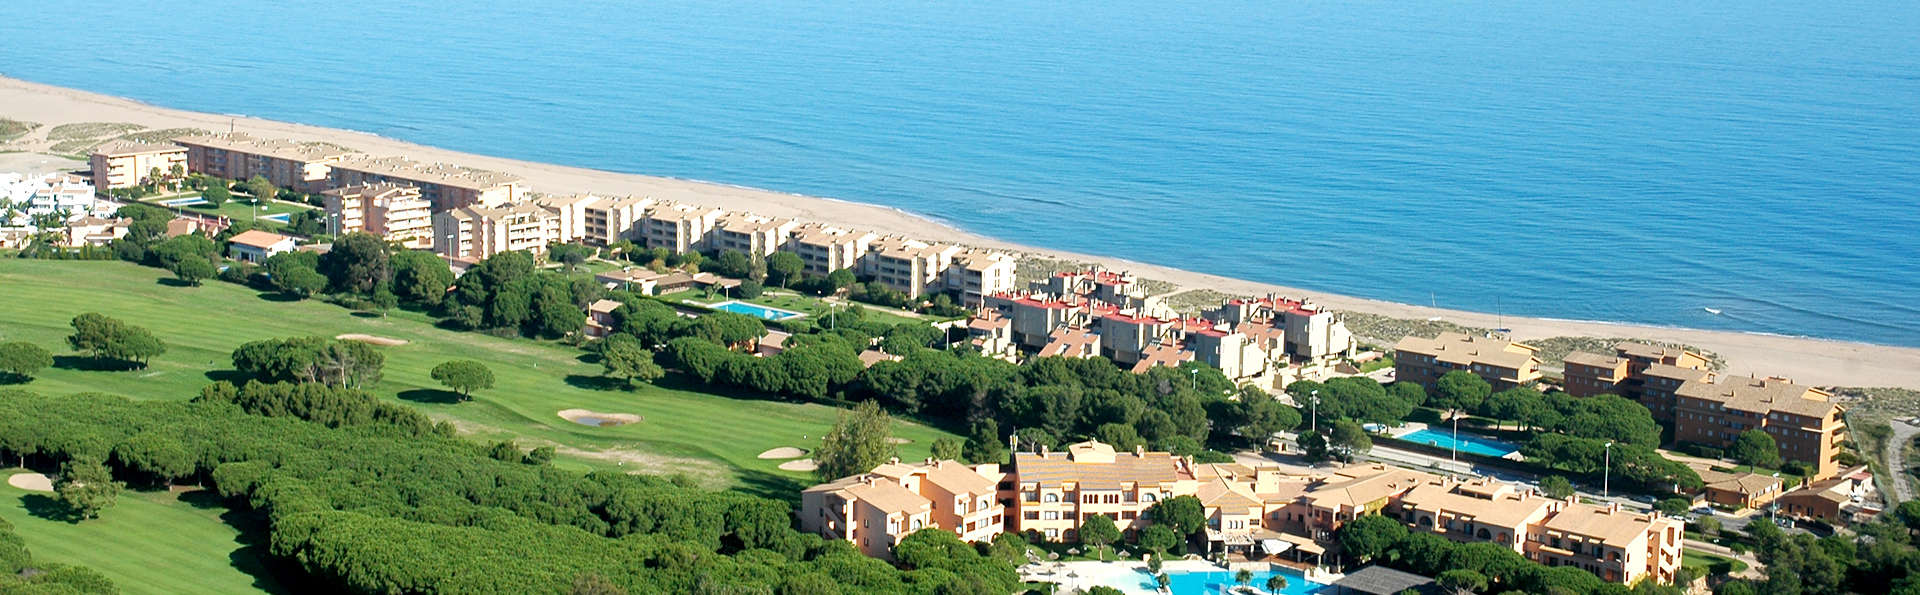 Hotel La Costa Golf & Beach Resort - Edit_View2.jpg